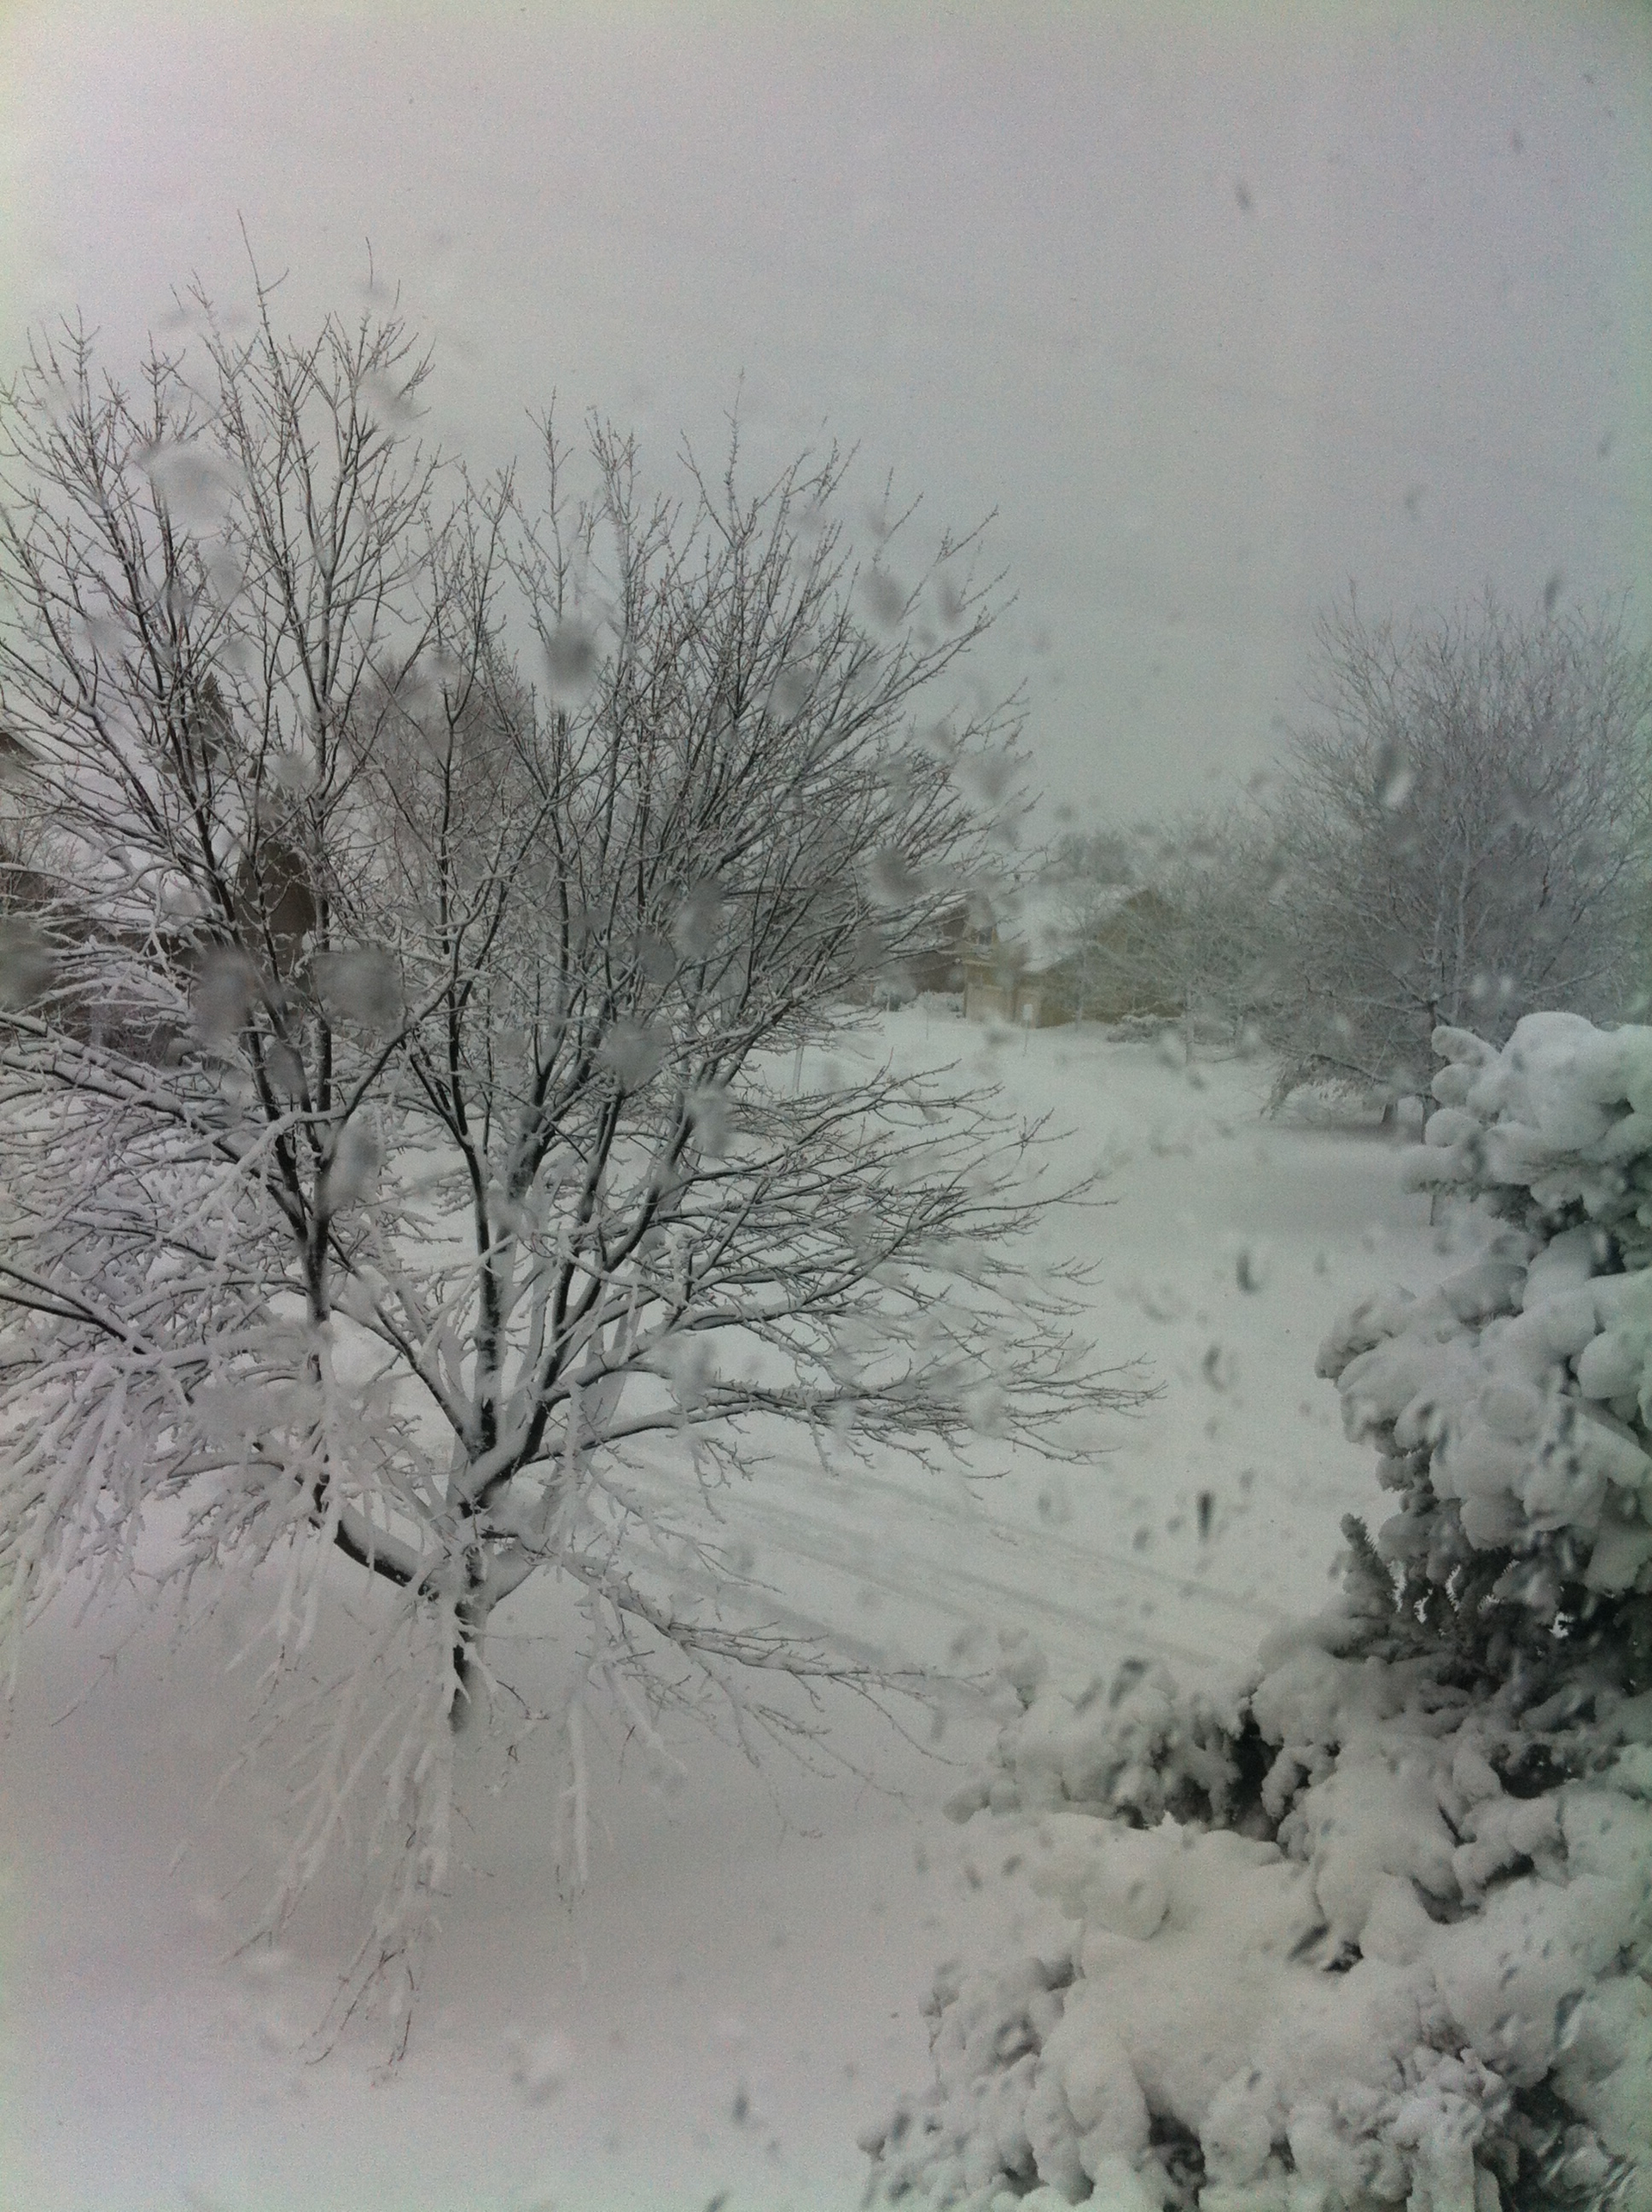 A snapshot of heavy snow outside the window.